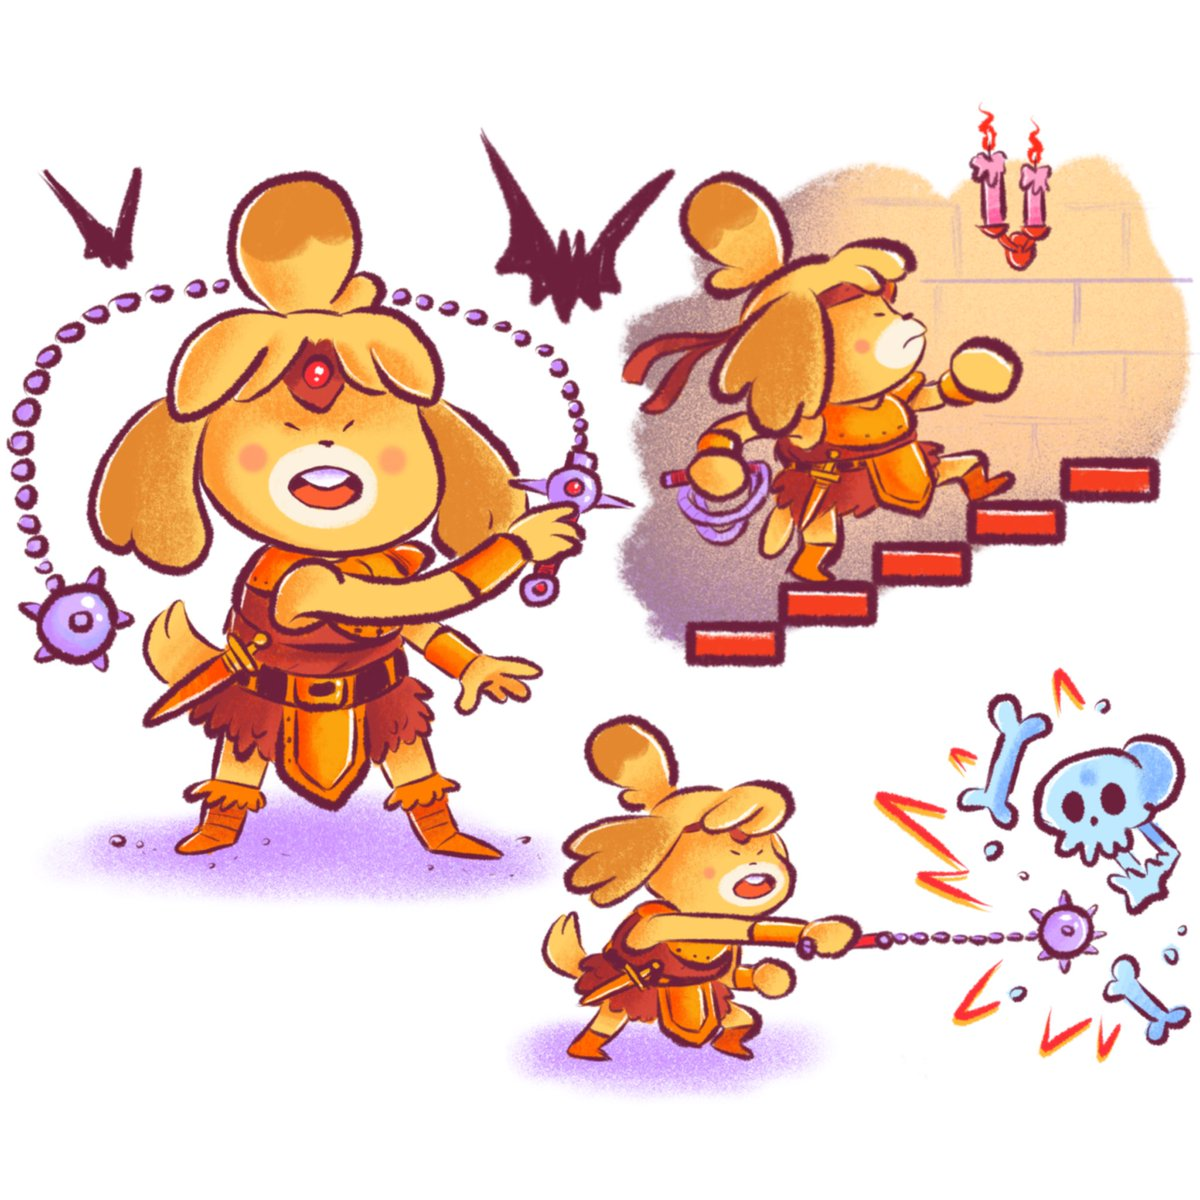 Couldn't decide who I wanted to draw more so I made a compromise, here's Isabellmont  #animalcrossing #Castlevania<br>http://pic.twitter.com/QlJv2n01gC